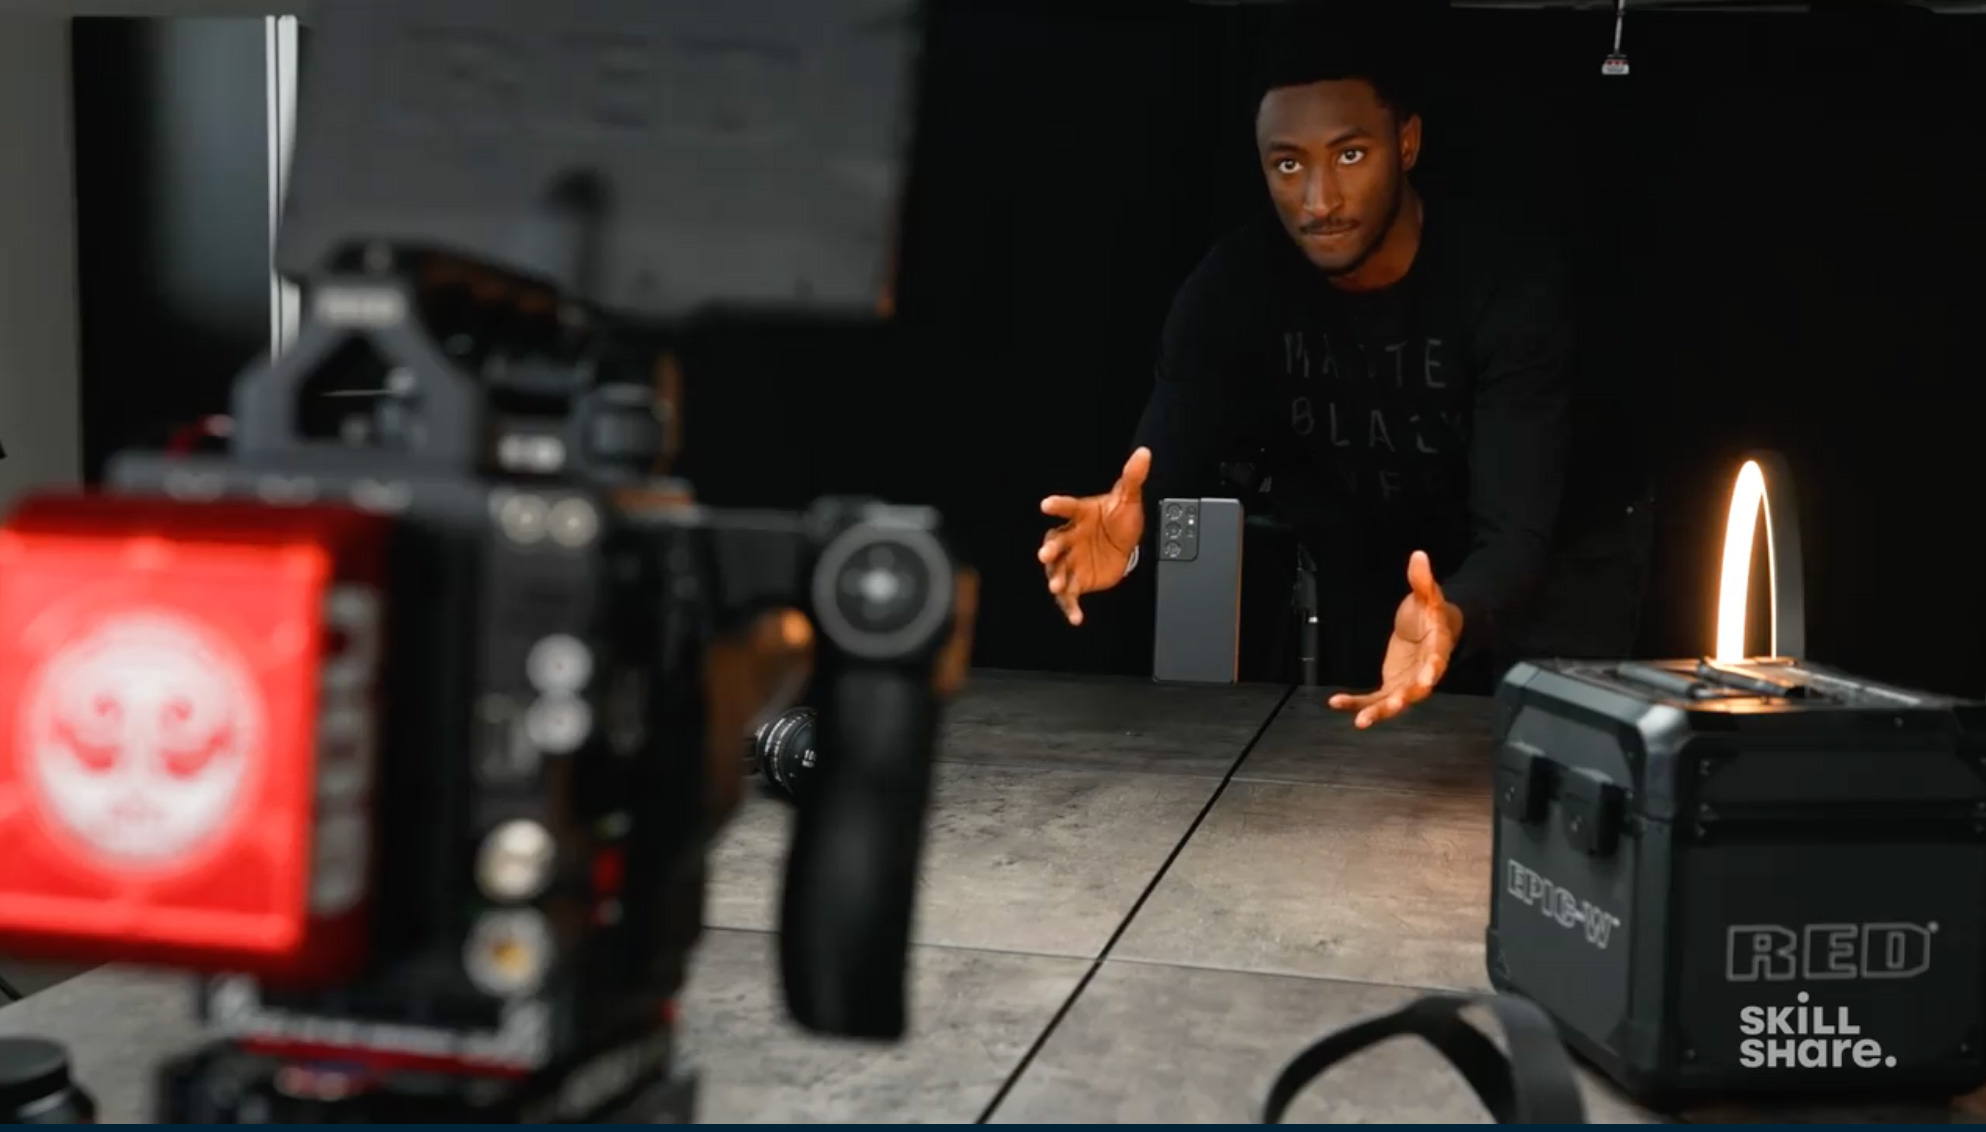 MKBHD filming a tech review with RED camera